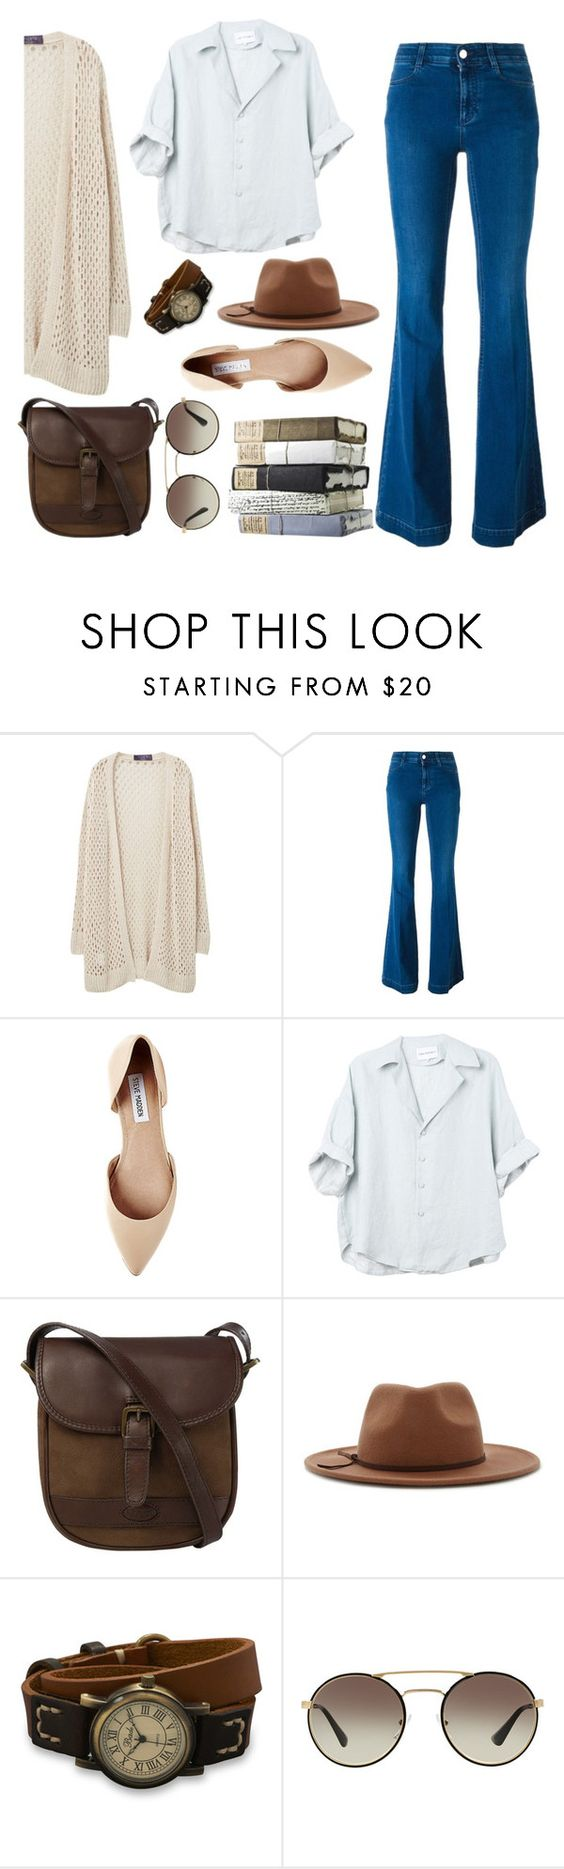 """""""Untitled #84"""" by emi201295 ❤ liked on Polyvore featuring Violeta by Mango, STELLA McCARTNEY, Steve Madden, DUBARRY, Forever 21, BillyTheTree and Prada"""